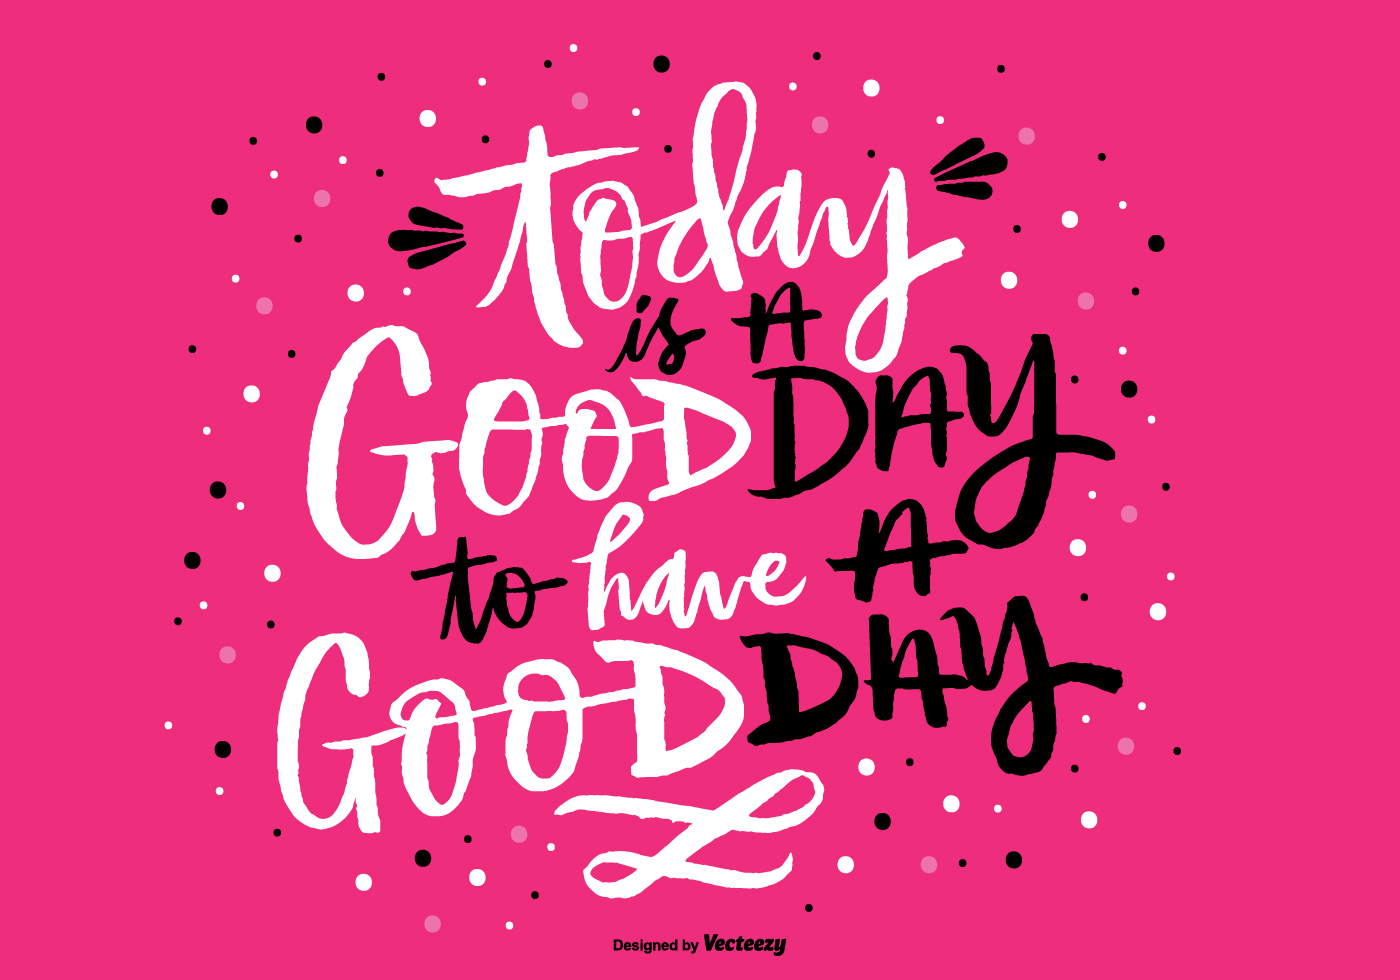 Today Is A Good Day Hand Lettering Vector Download Free